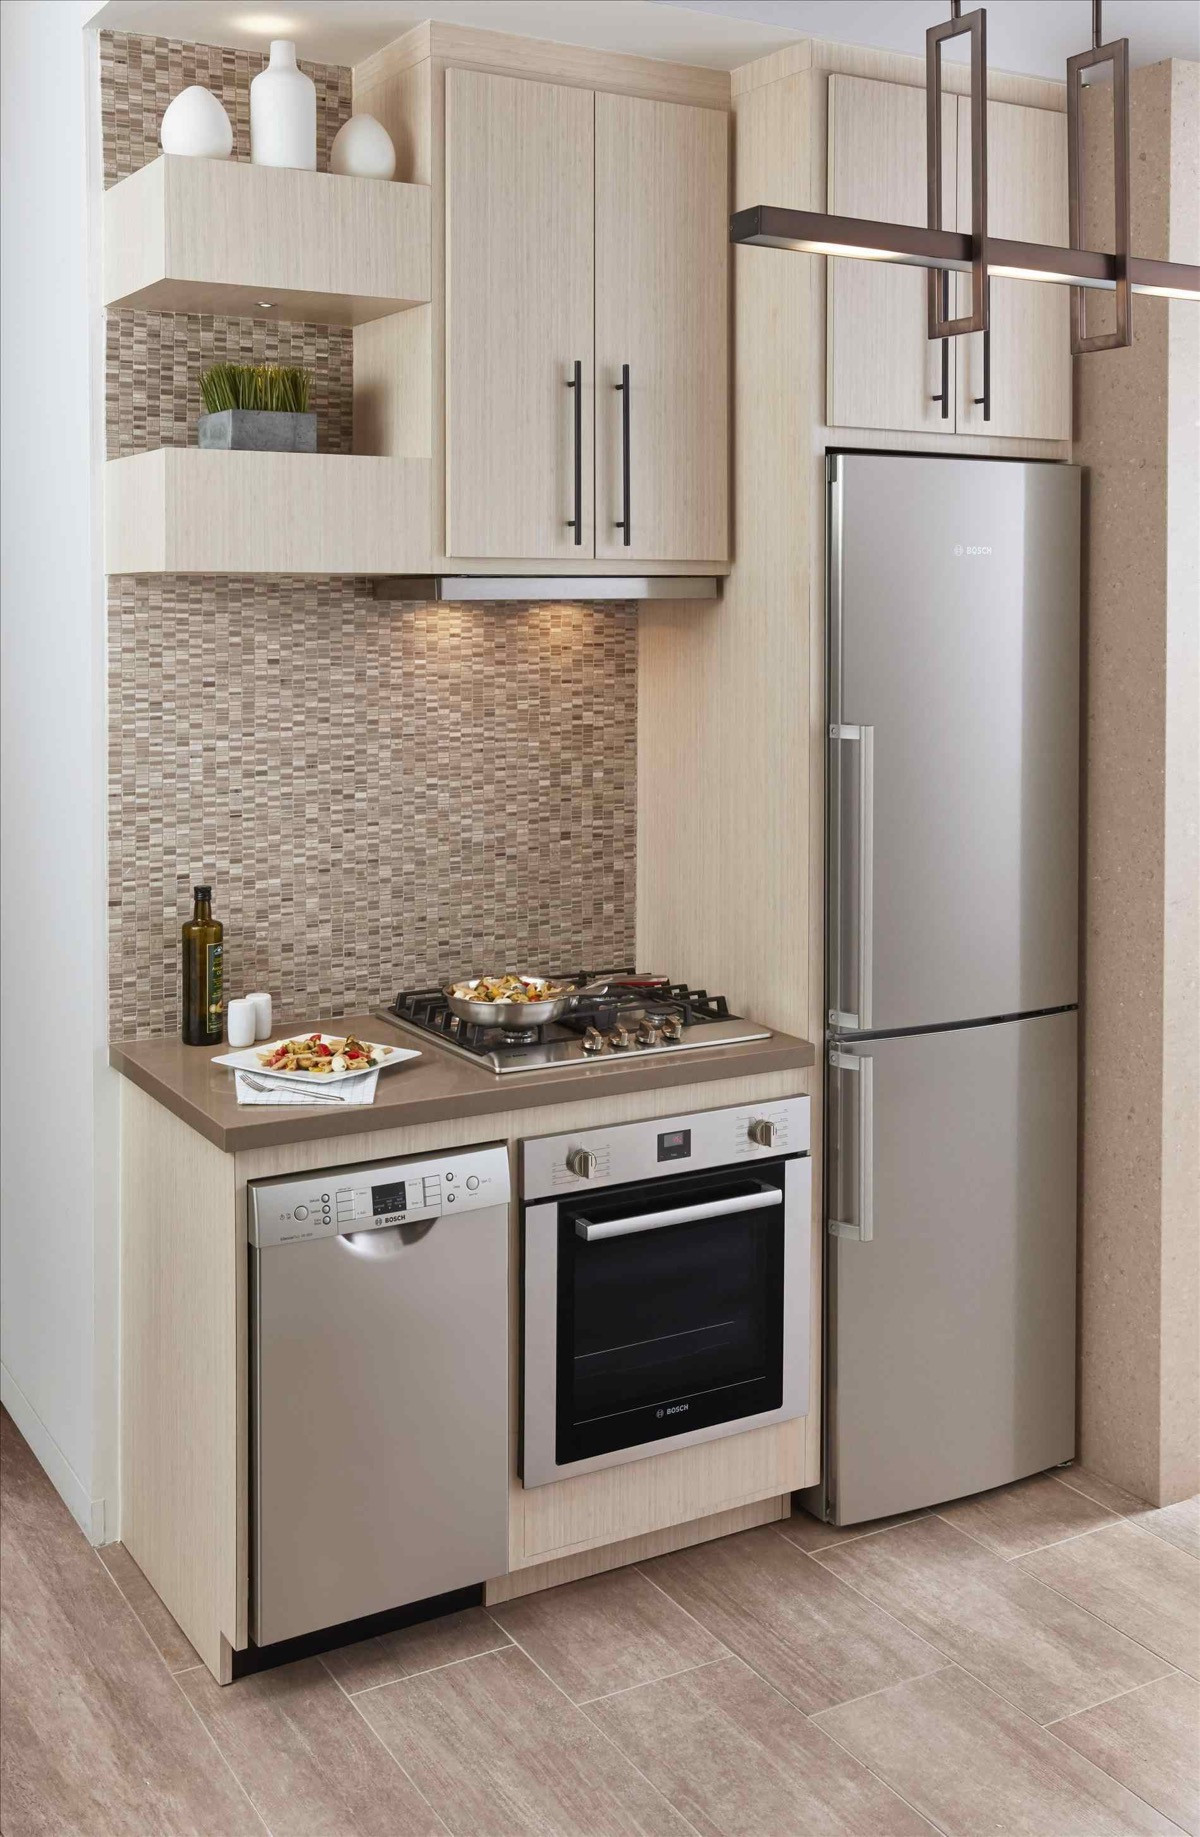 Small Kitchen Ideas  50 Splendid Small Kitchens And Ideas You Can Use From Them